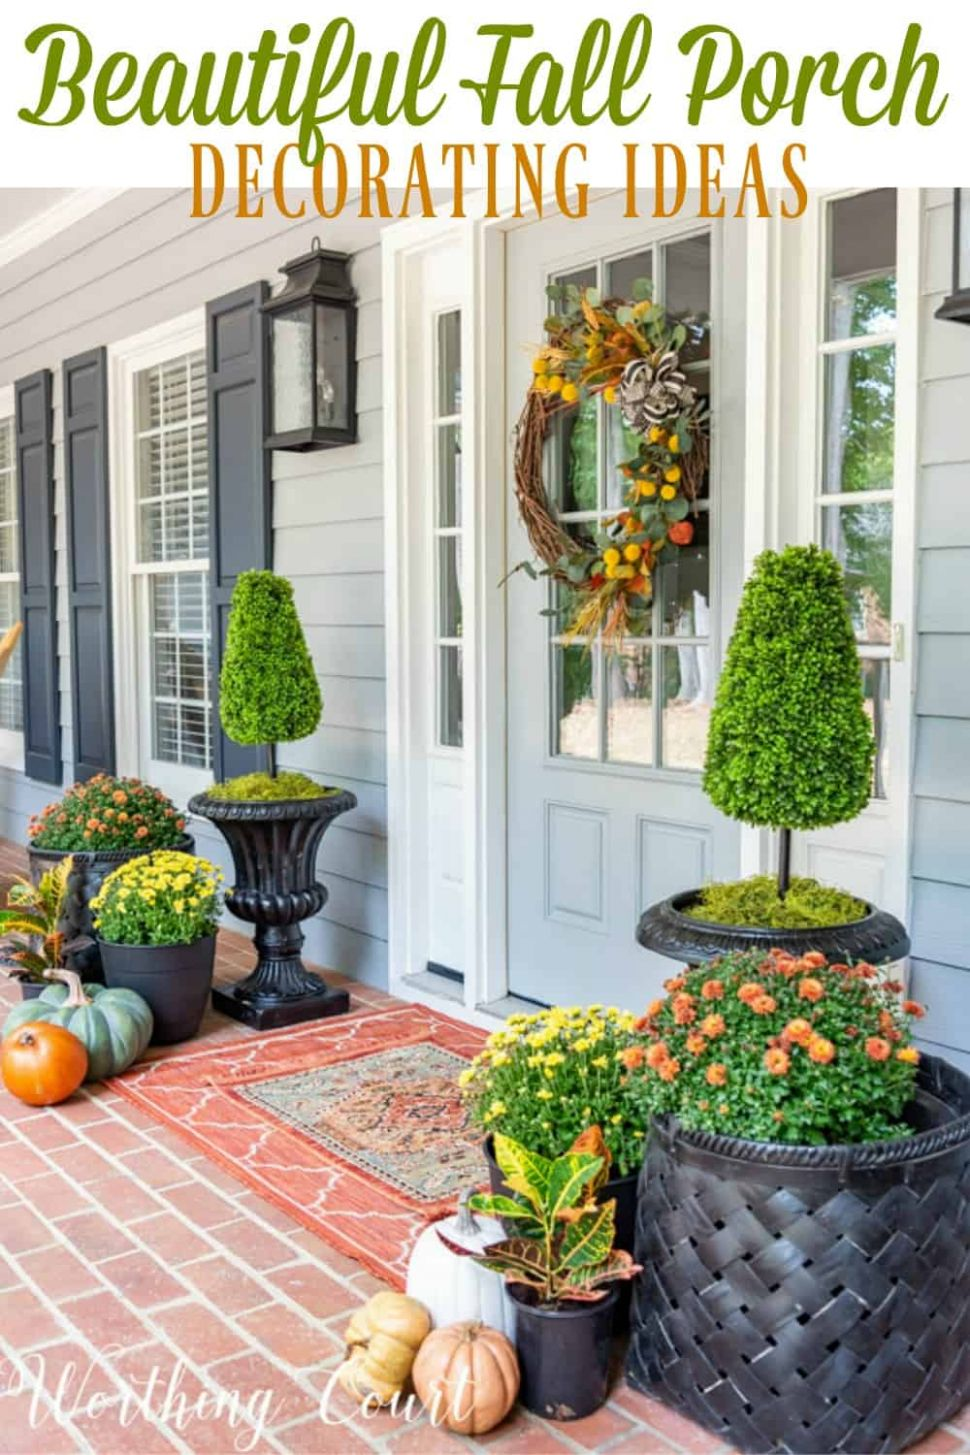 Inspiring Front Porch Decor Ideas For Fall | Worthing Court